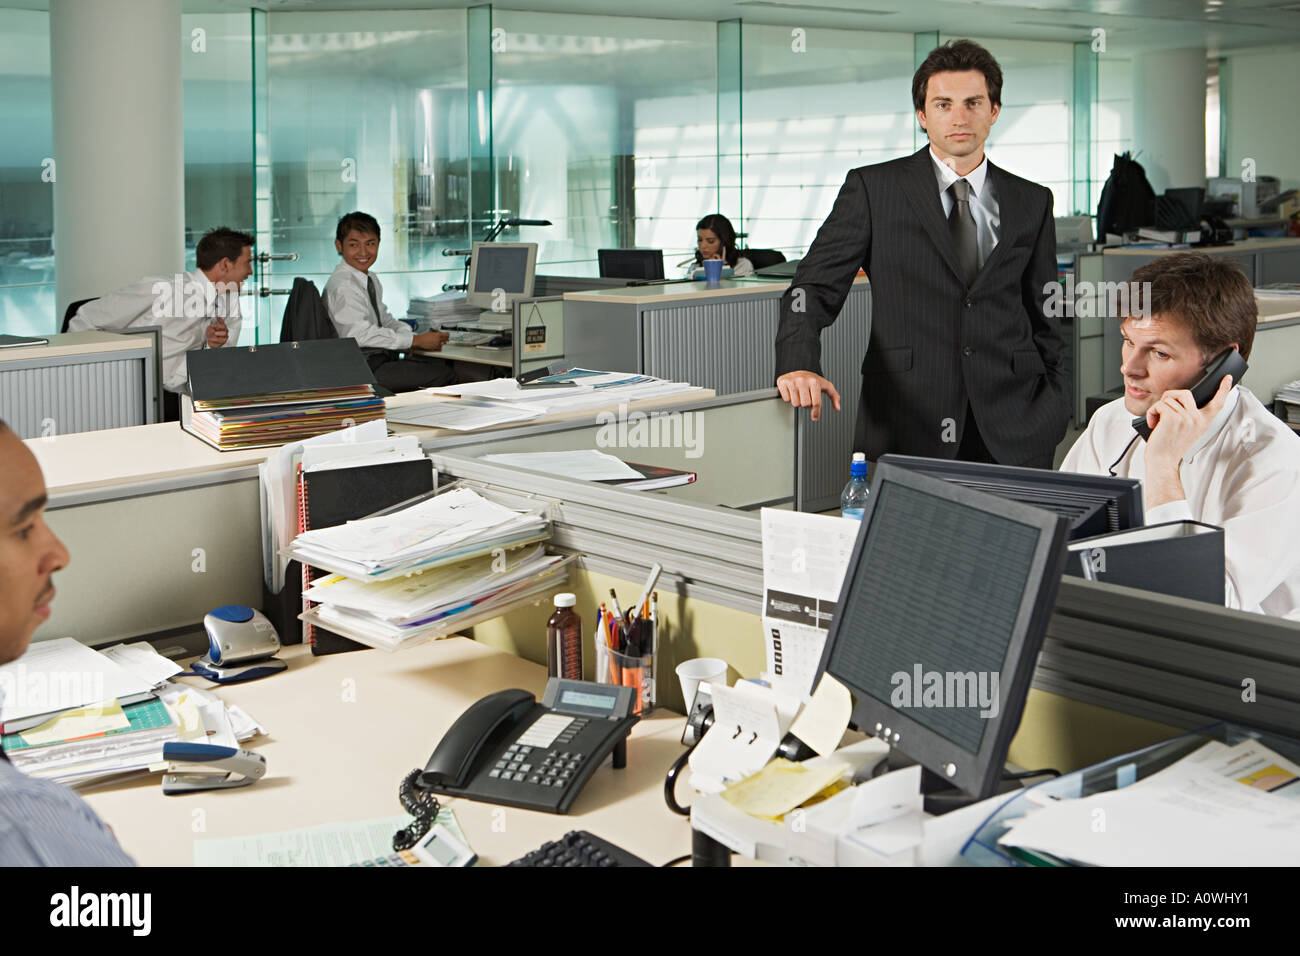 Businessman and office workers - Stock Image